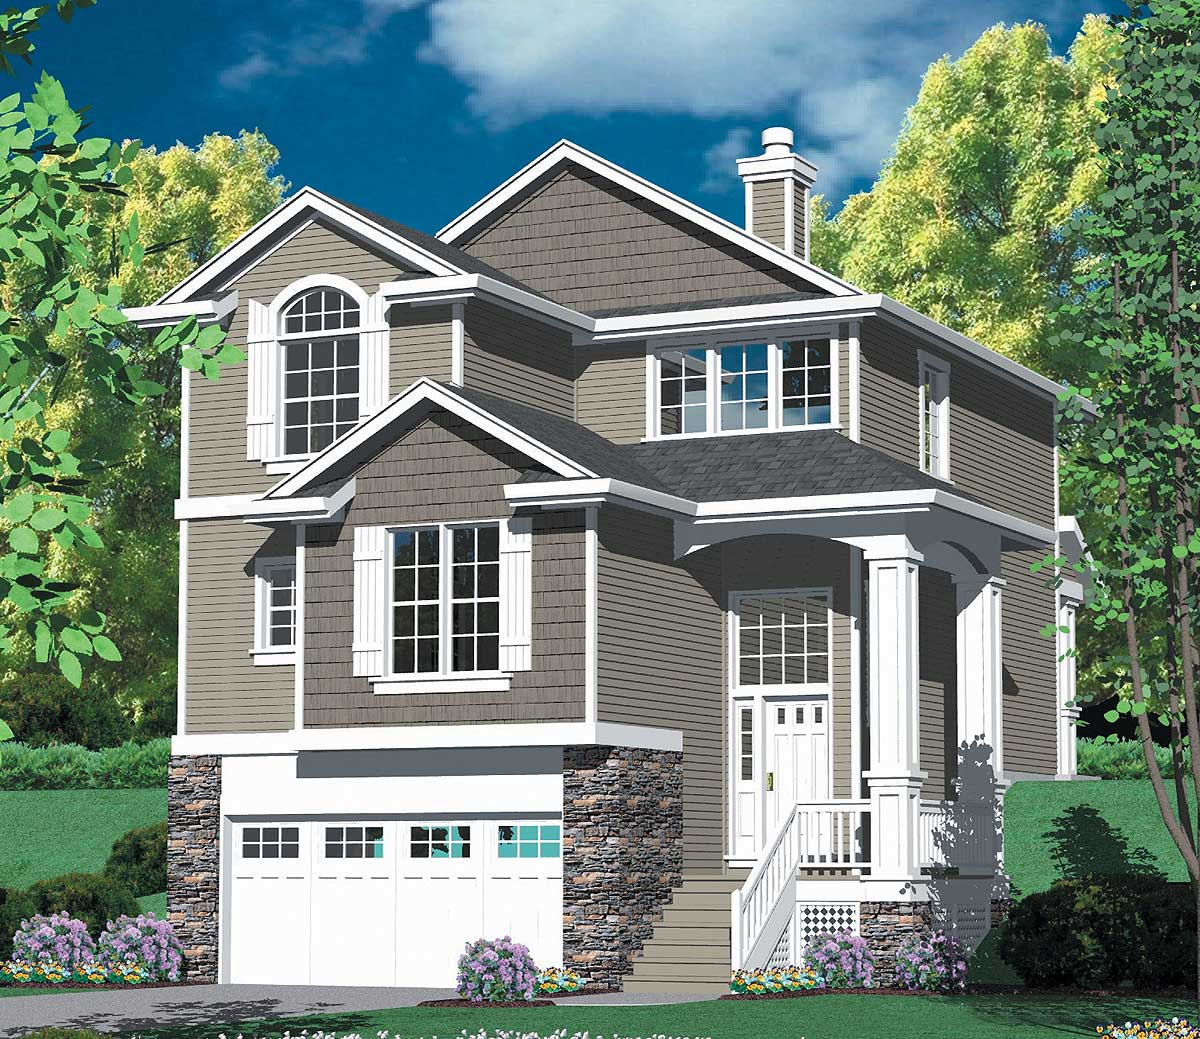 Home Design Ideas Floor Plans: Multi-level Craftsman Plan - 69296AM